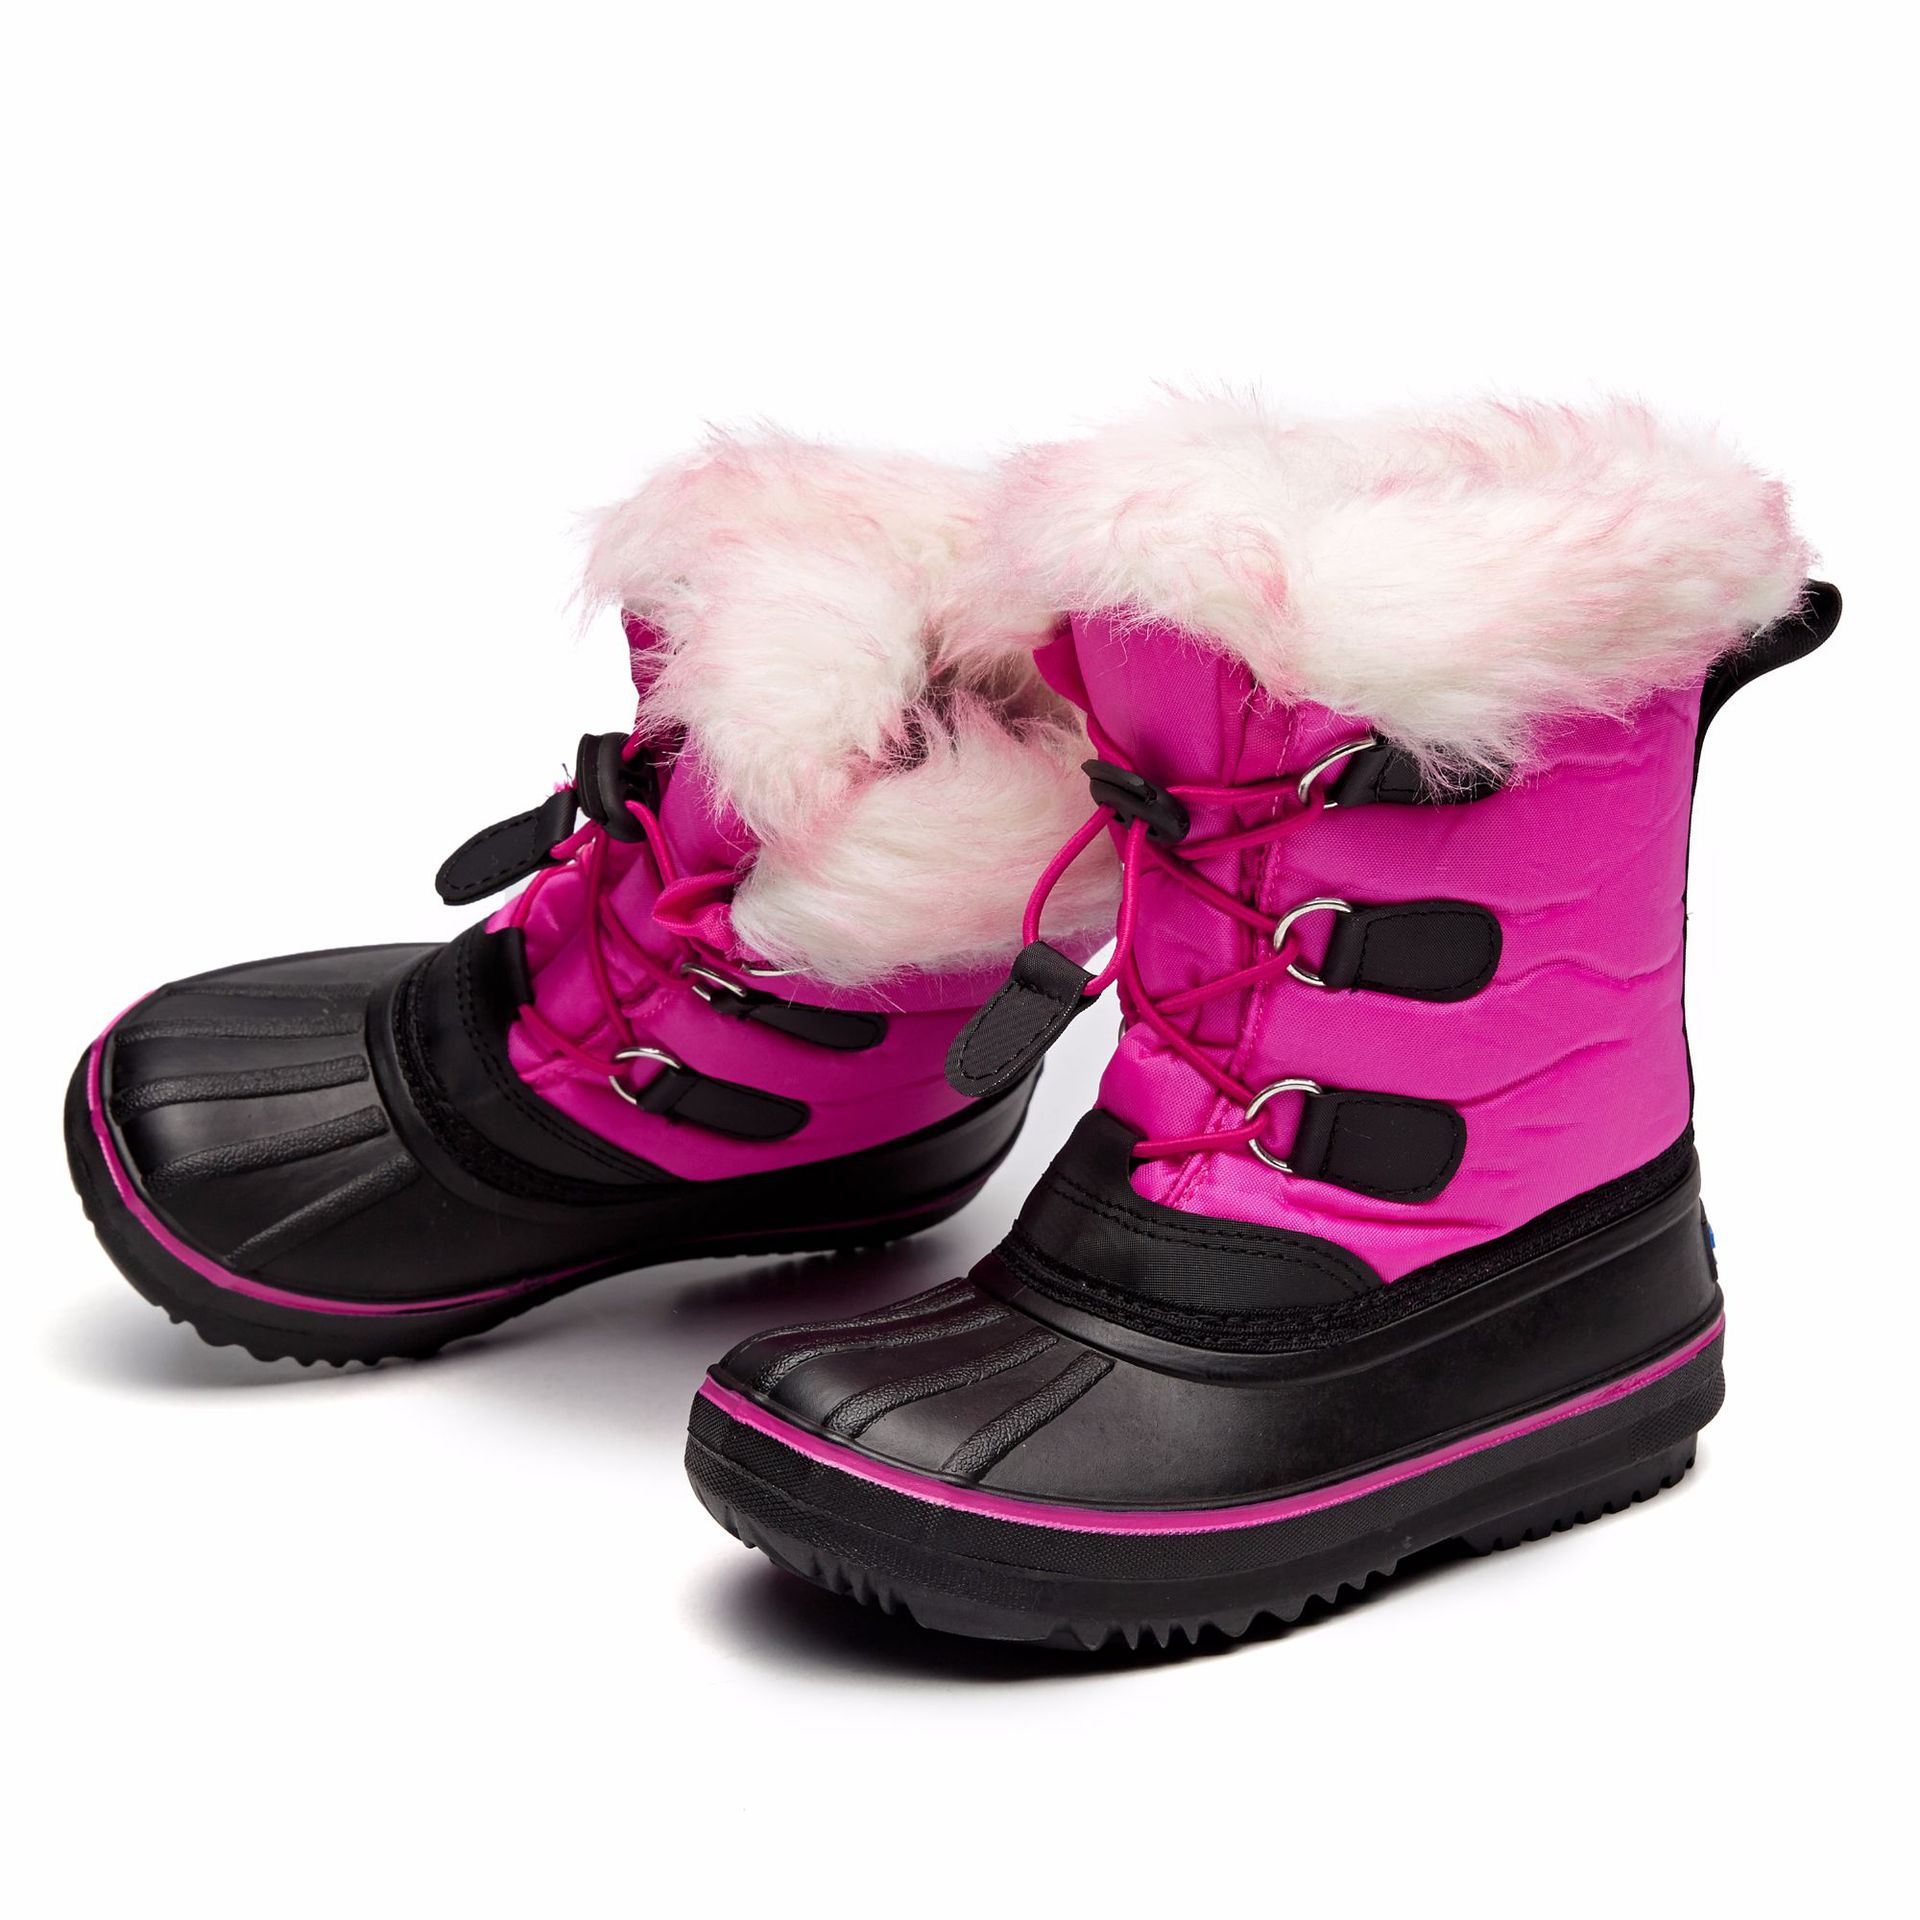 High Quality Anti-slip Kids Winter Warm Snow Shoe Children Snow <strong>Boot</strong> For Wholesale